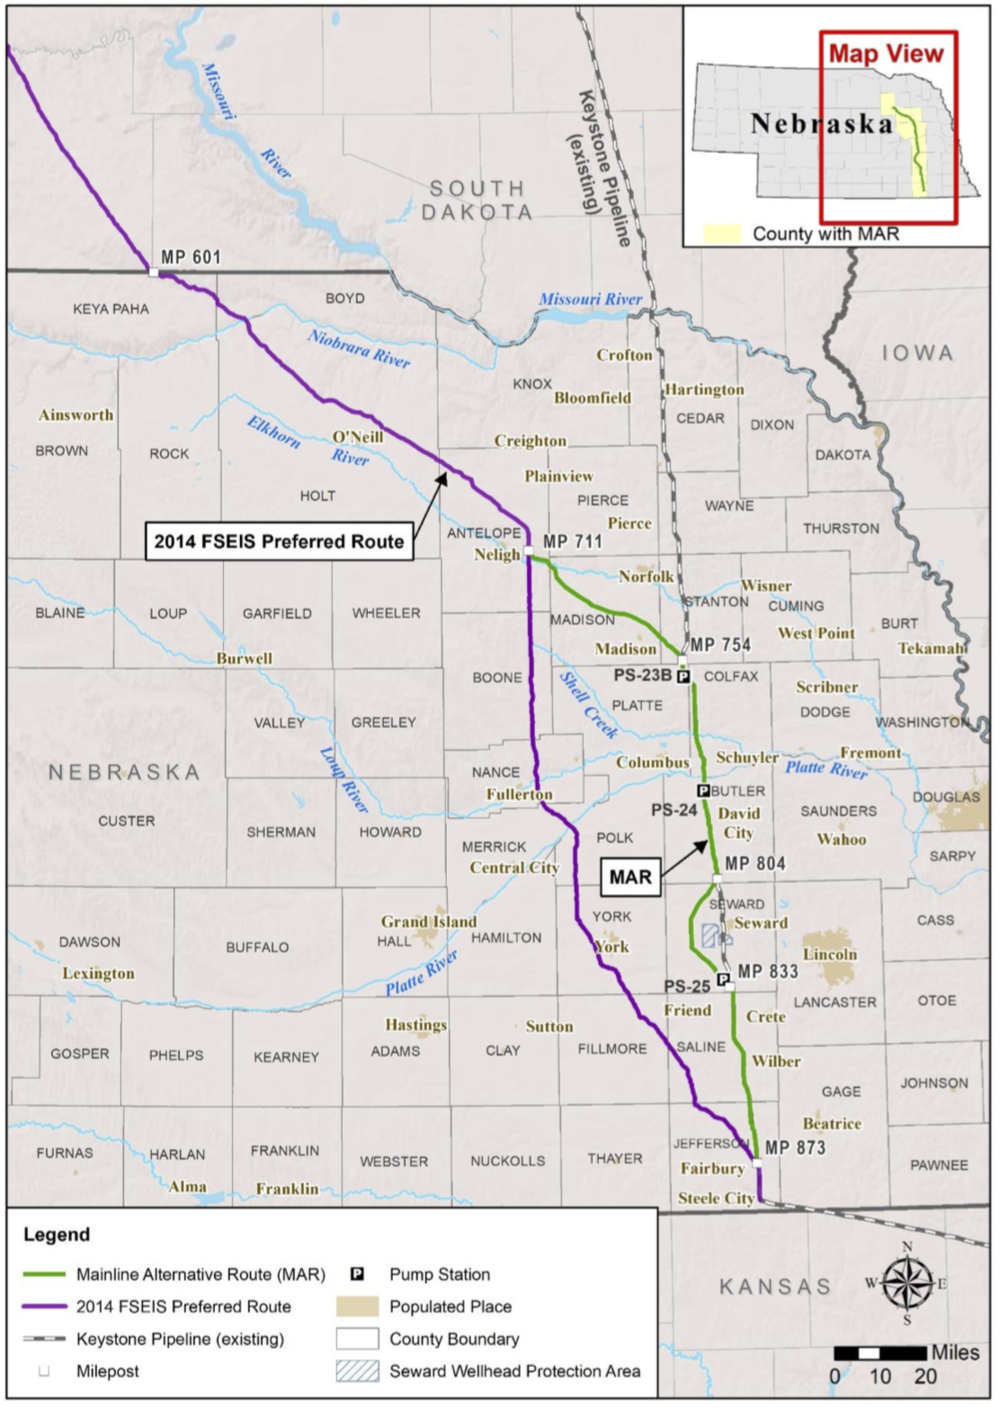 keystone-xl-preferred-mainline-alternative-routes.png